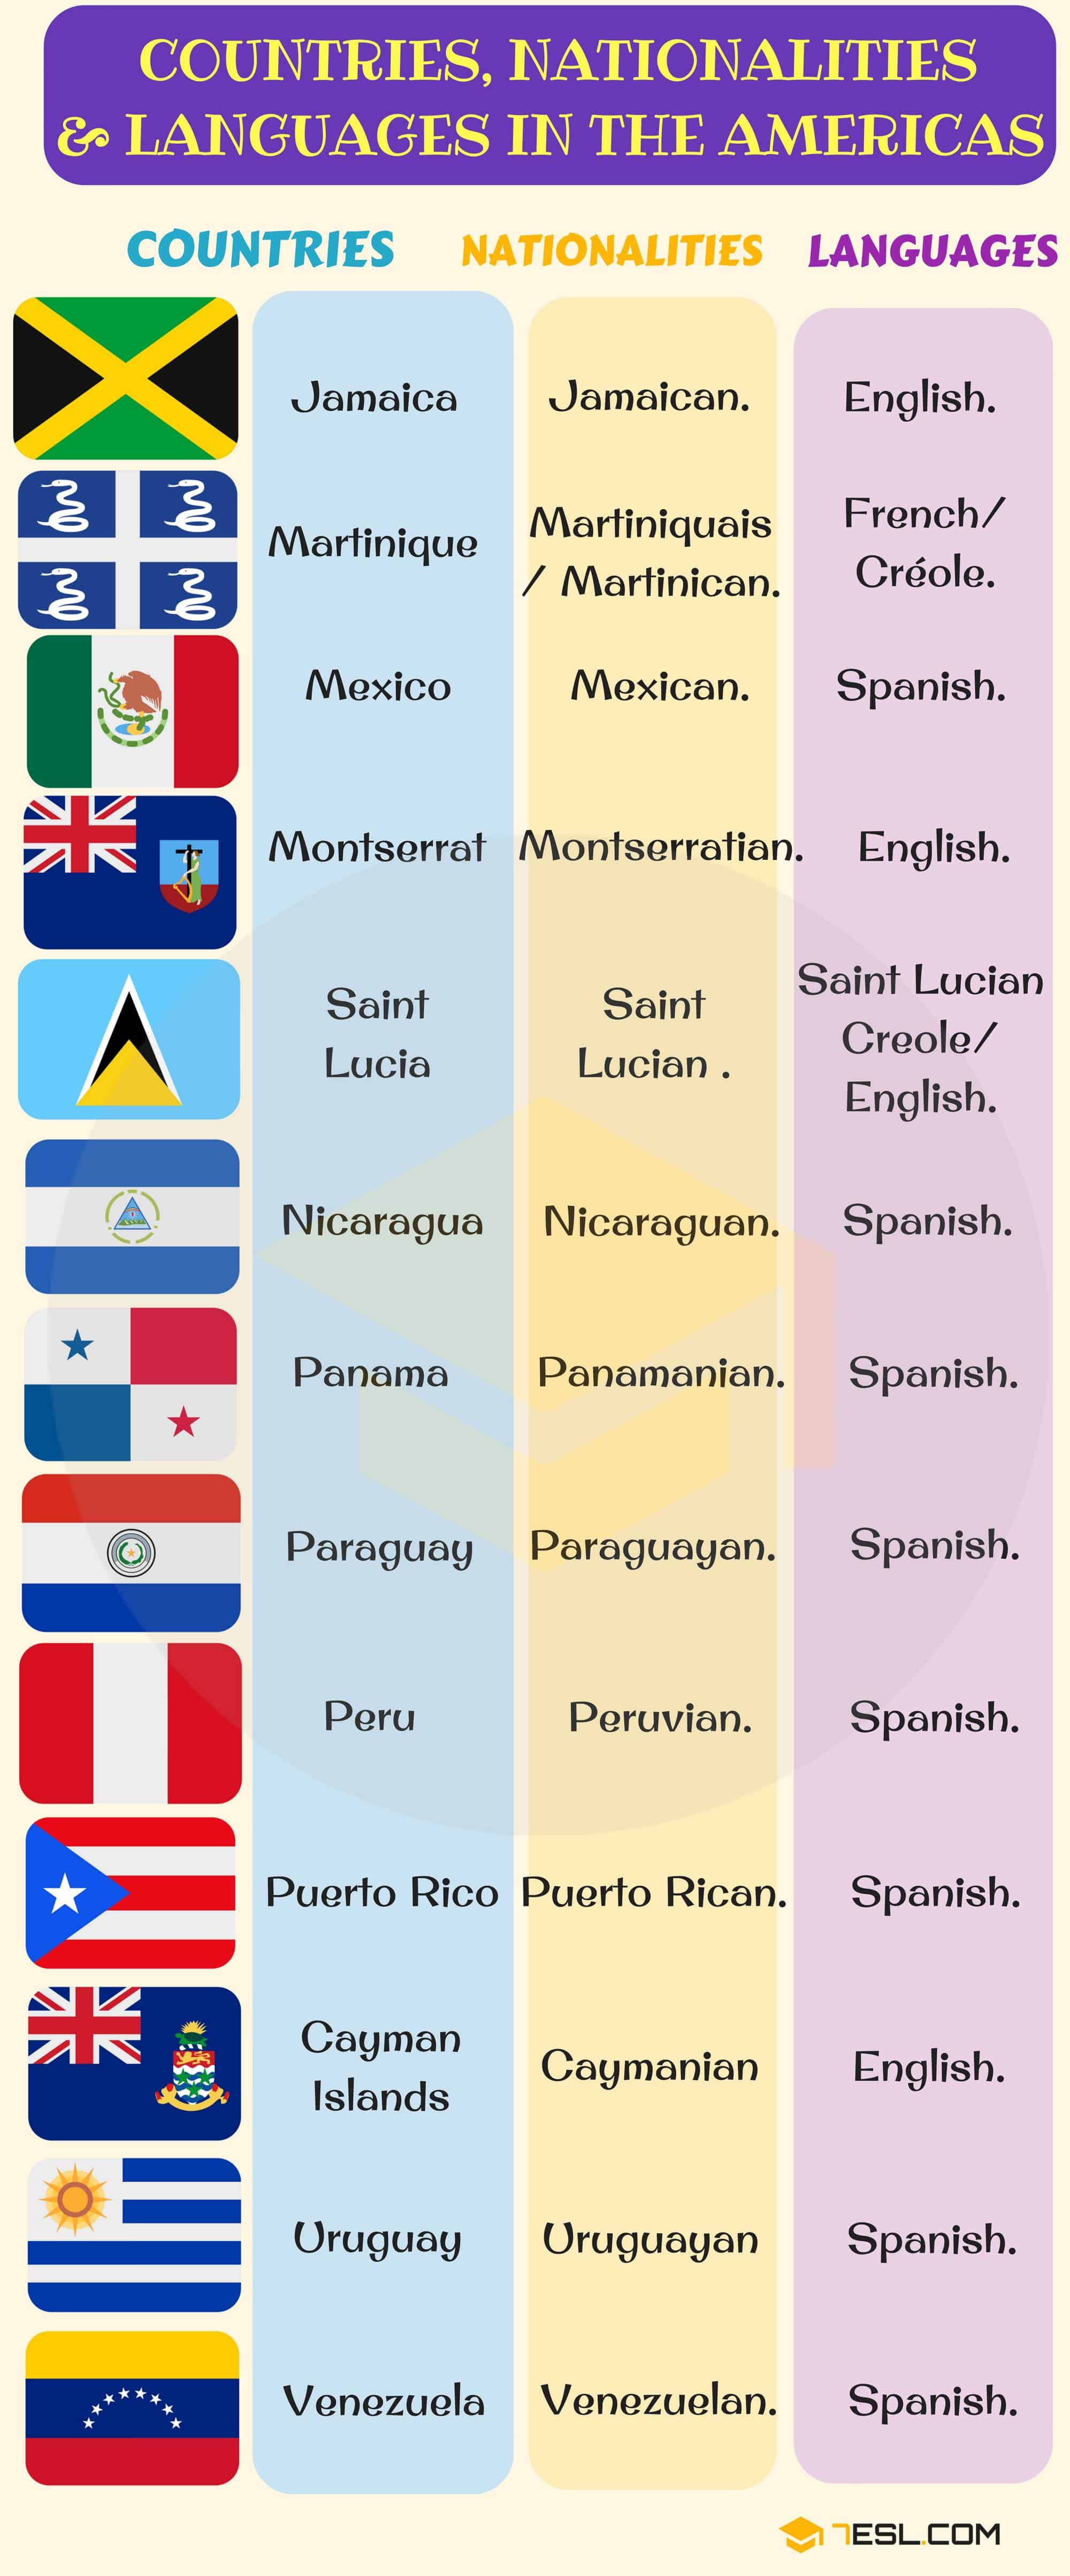 South American countries, North American countries, Central American countries with flags, languages and nationalities | Infographic 1